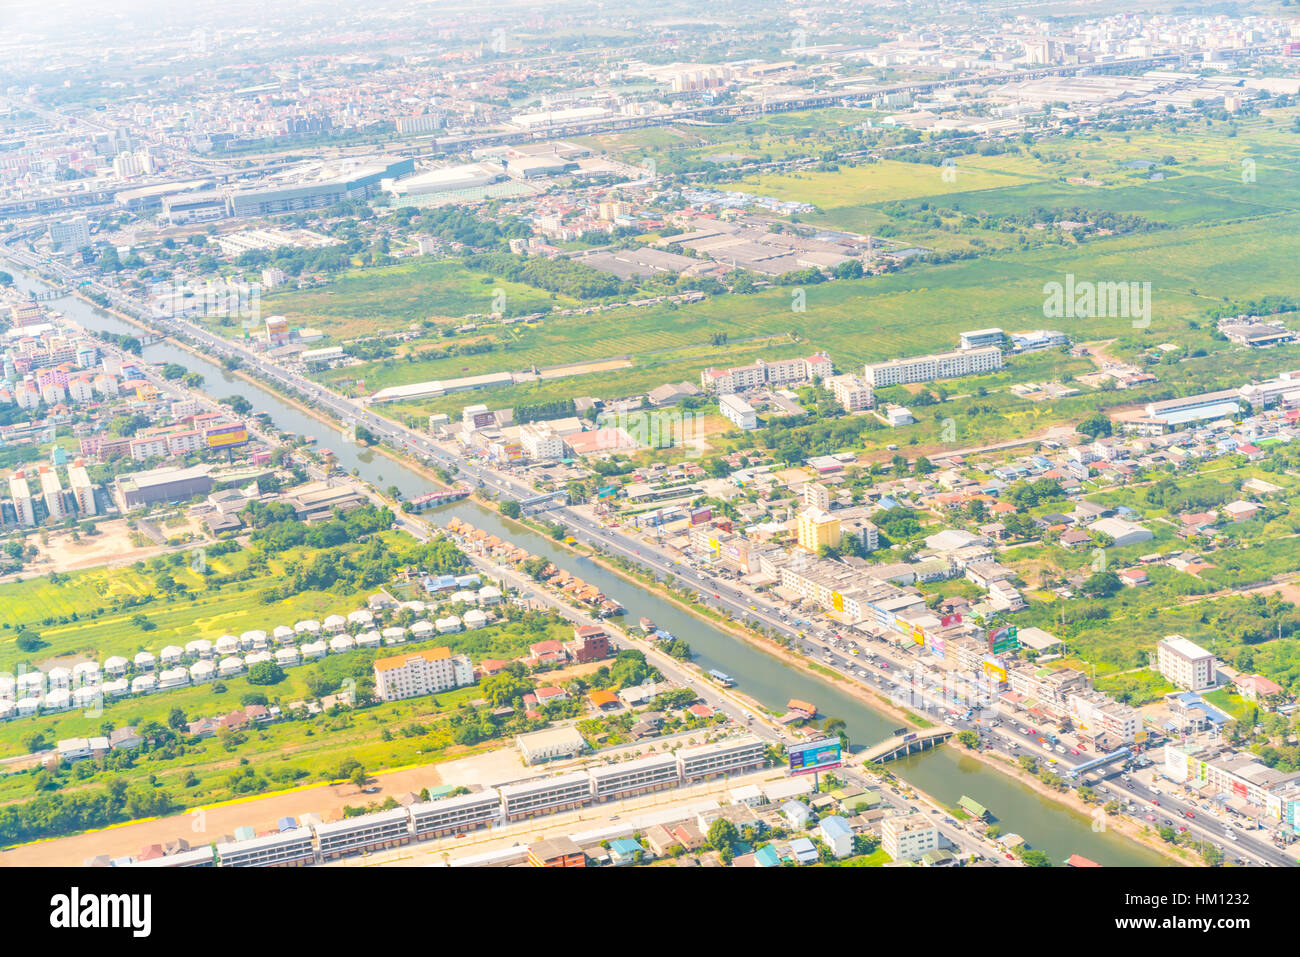 View of the ground from airplane window - Stock Image